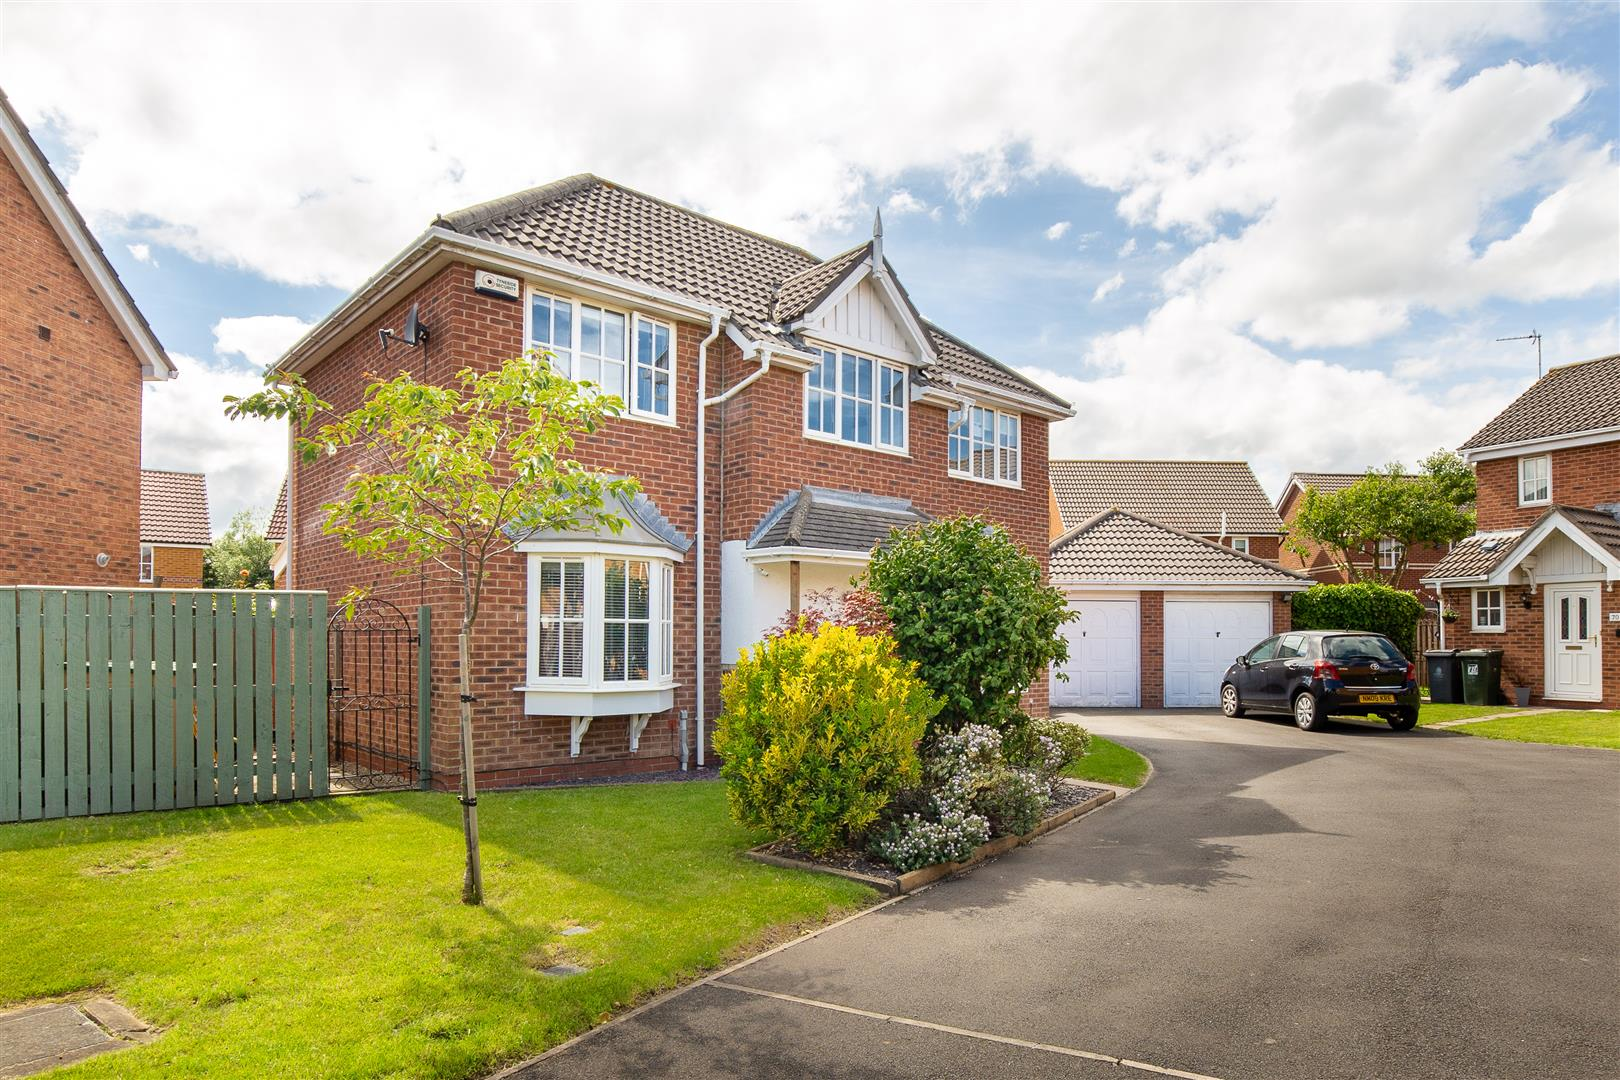 3 bed detached house for sale in West Allotment Newcastle Upon Tyne, NE27 0RF, NE27